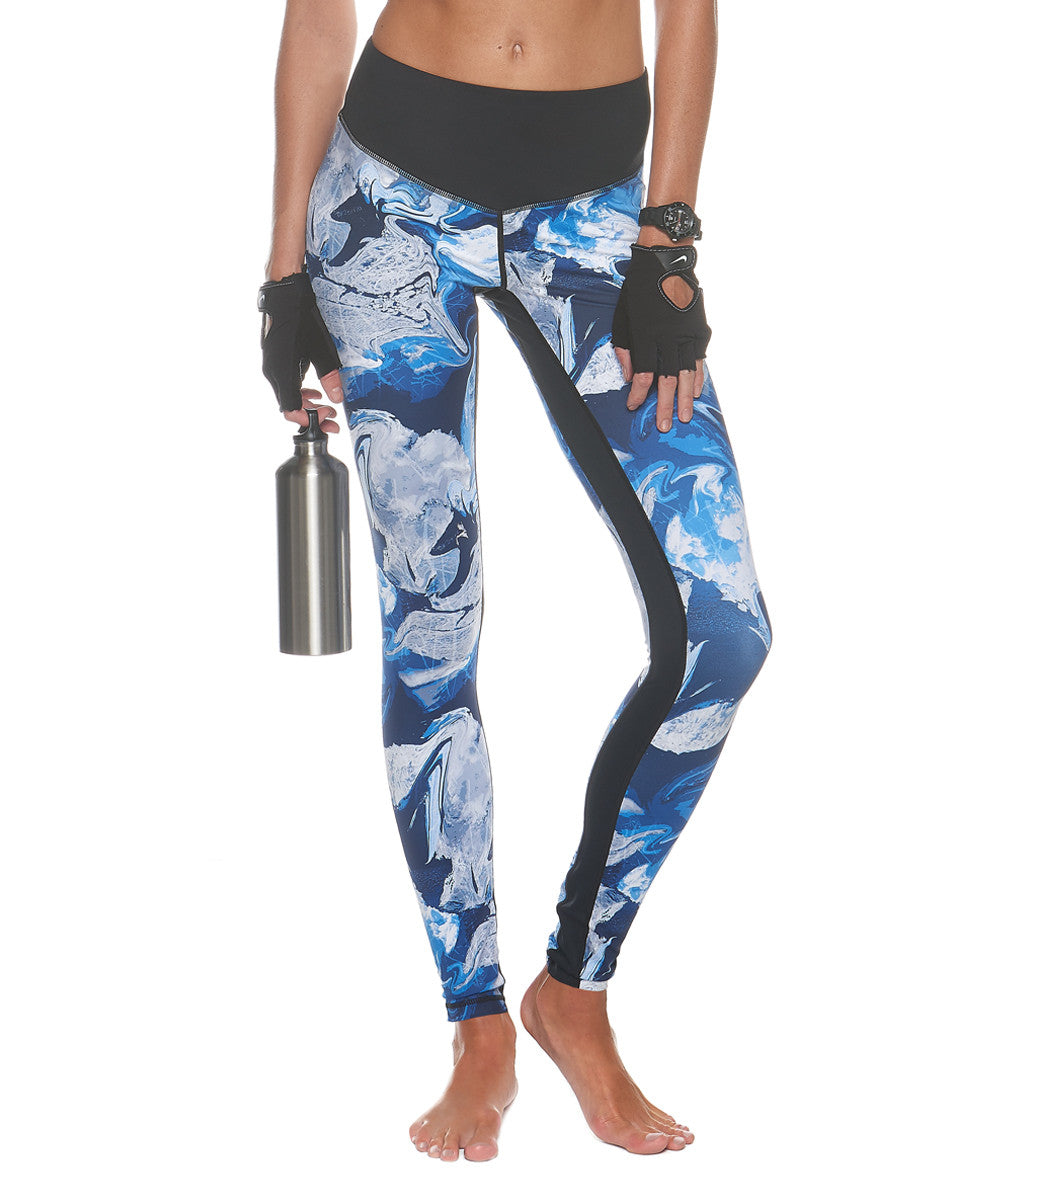 L'urv Curious adventure Tights - myactivestyle.no